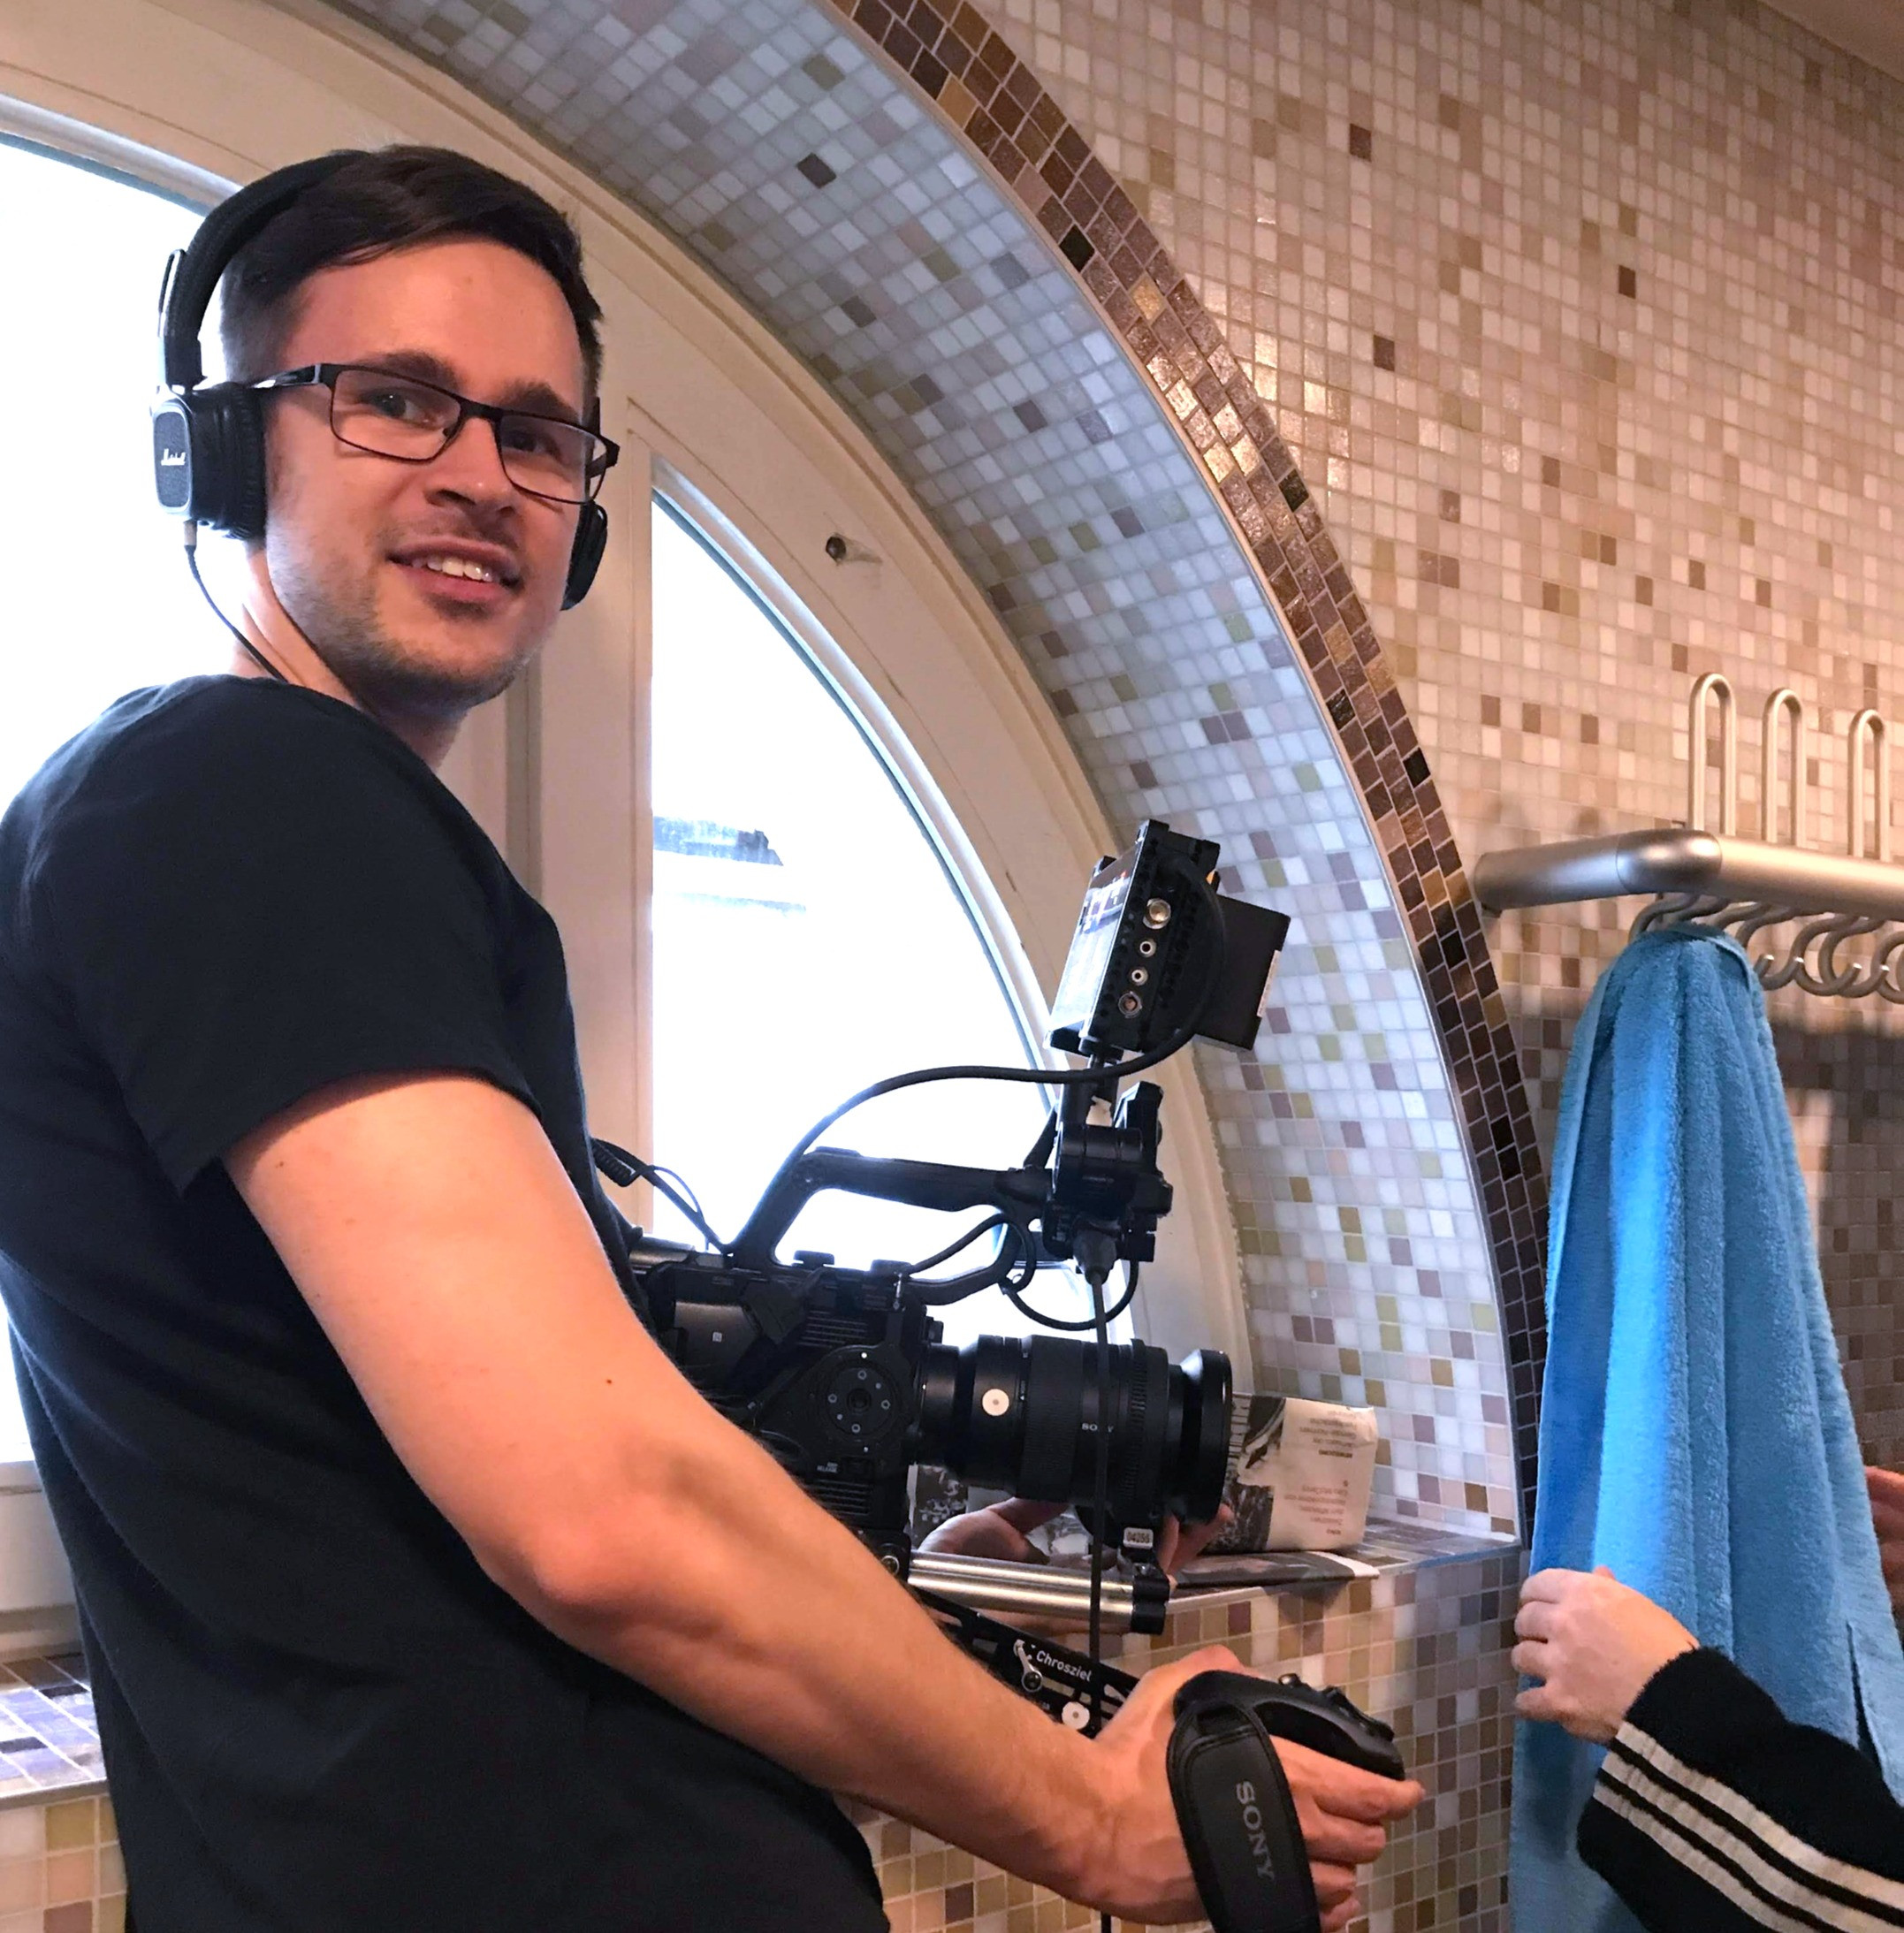 Videographer for 3h